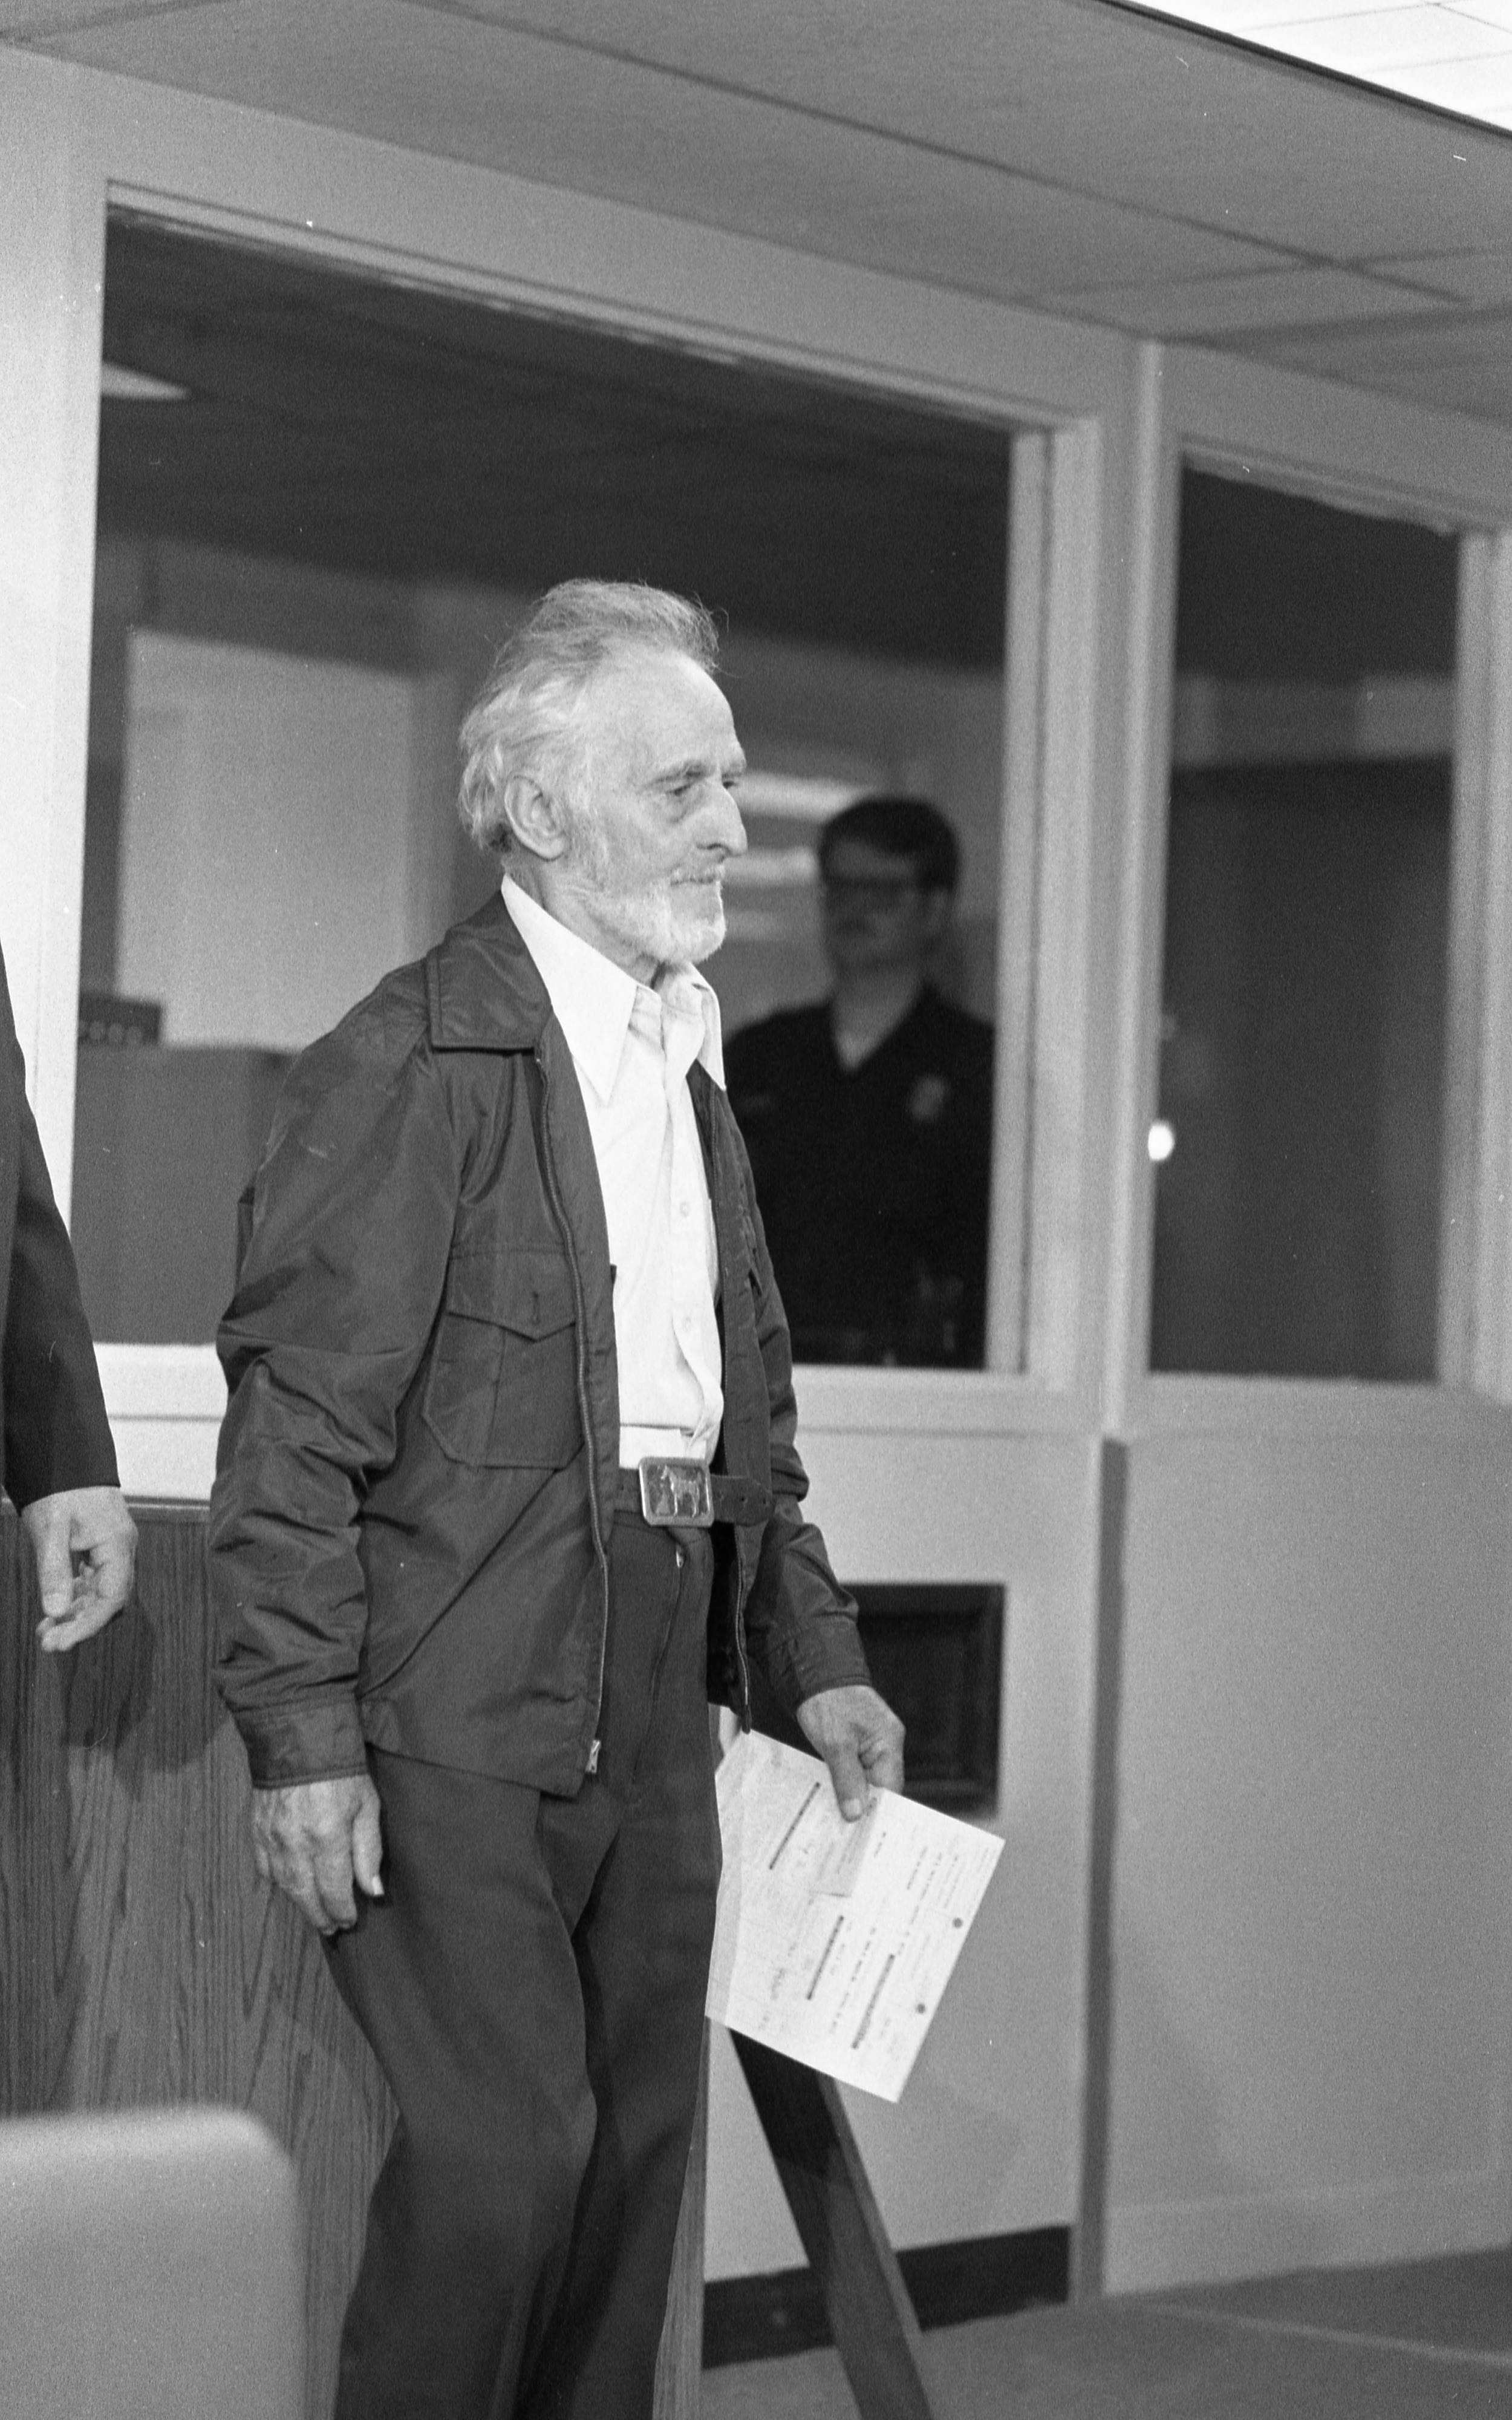 Wilford P. Cashman, aka John E. Burns, At Washtenaw County Jail After His Arraignment, June 1987 image